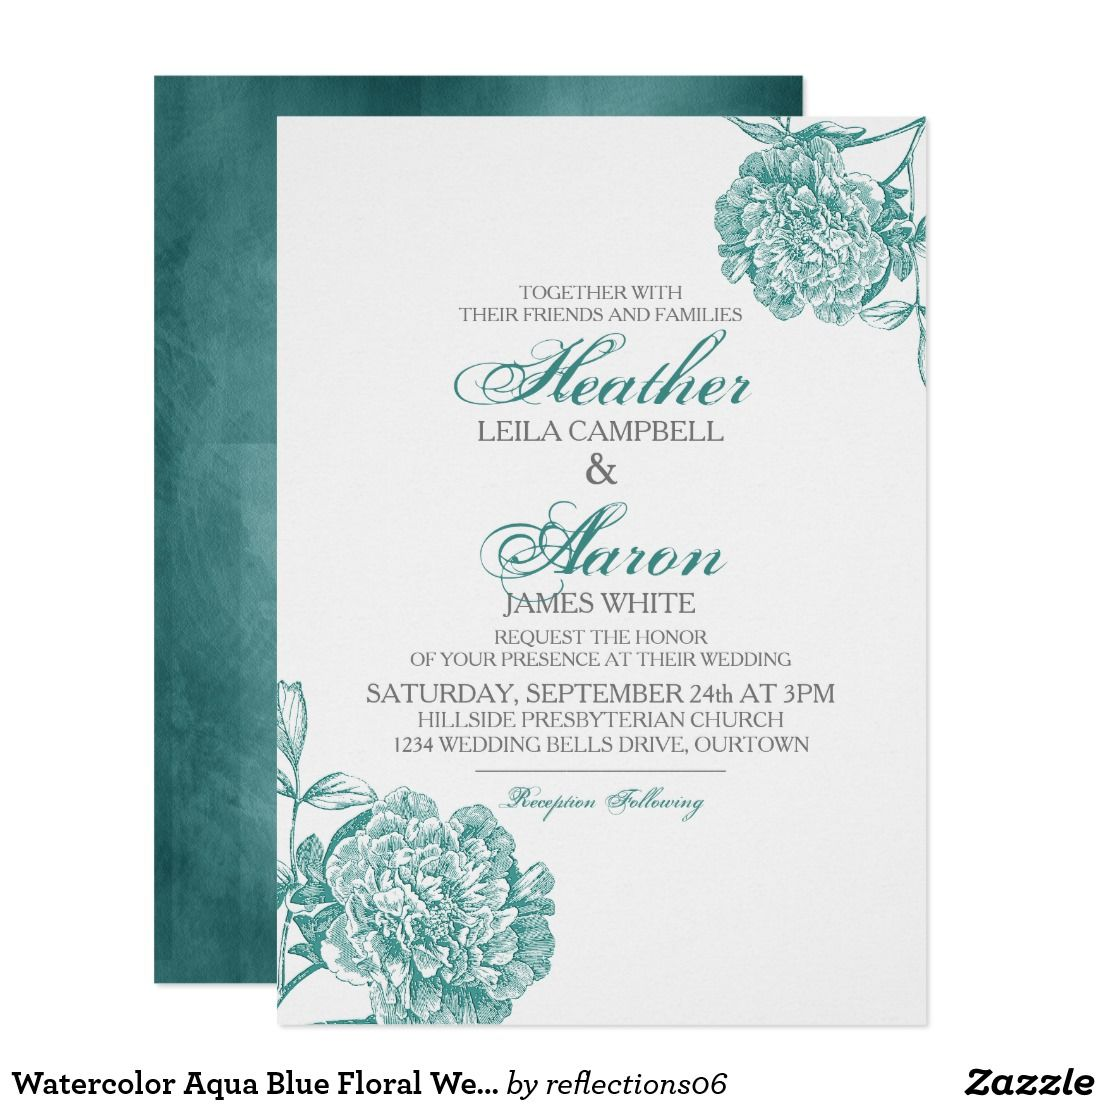 Watercolor Aqua Blue Floral Wedding Invitation Wedding Bridal